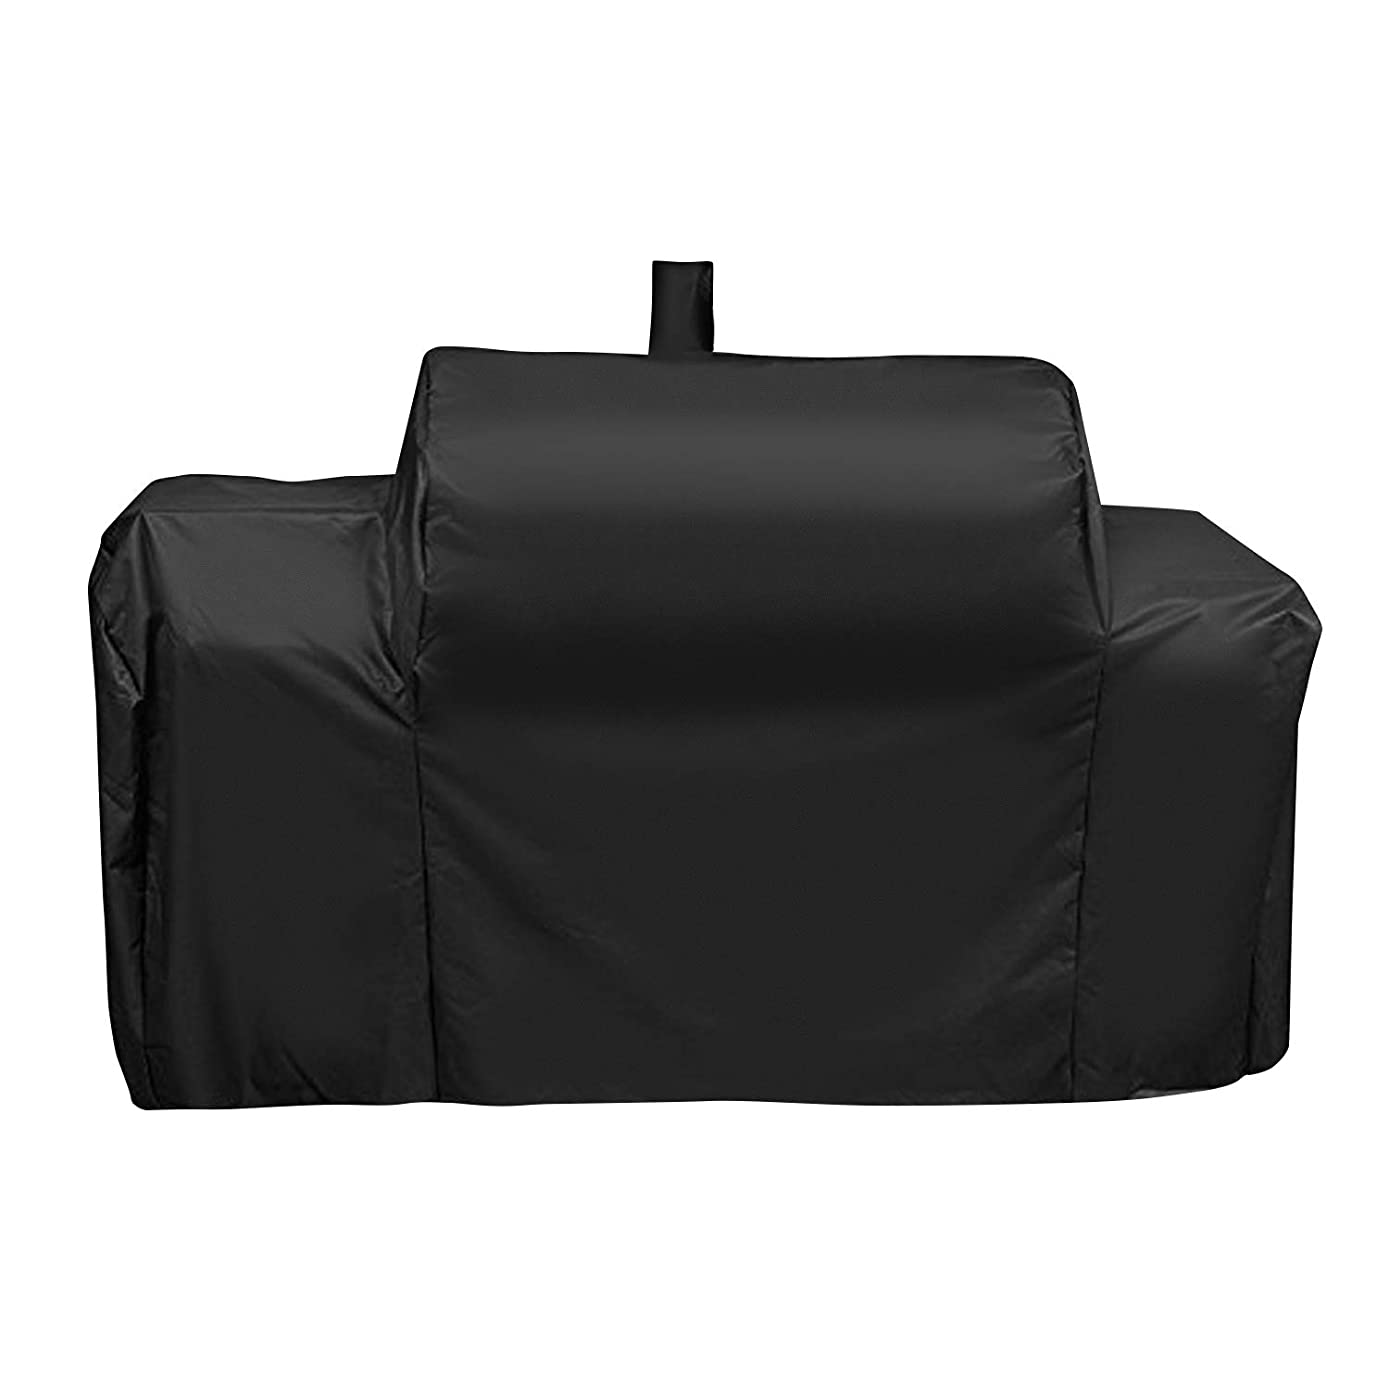 SunPatio Outdoor Heavy Duty Waterproof Grill Cover 74 Inch for Oklahoma Joe's Longhorn Combo Grill and More Triple-Function Combination Gas/Charcoal/Smoker Grill, All Weather Protection, Black